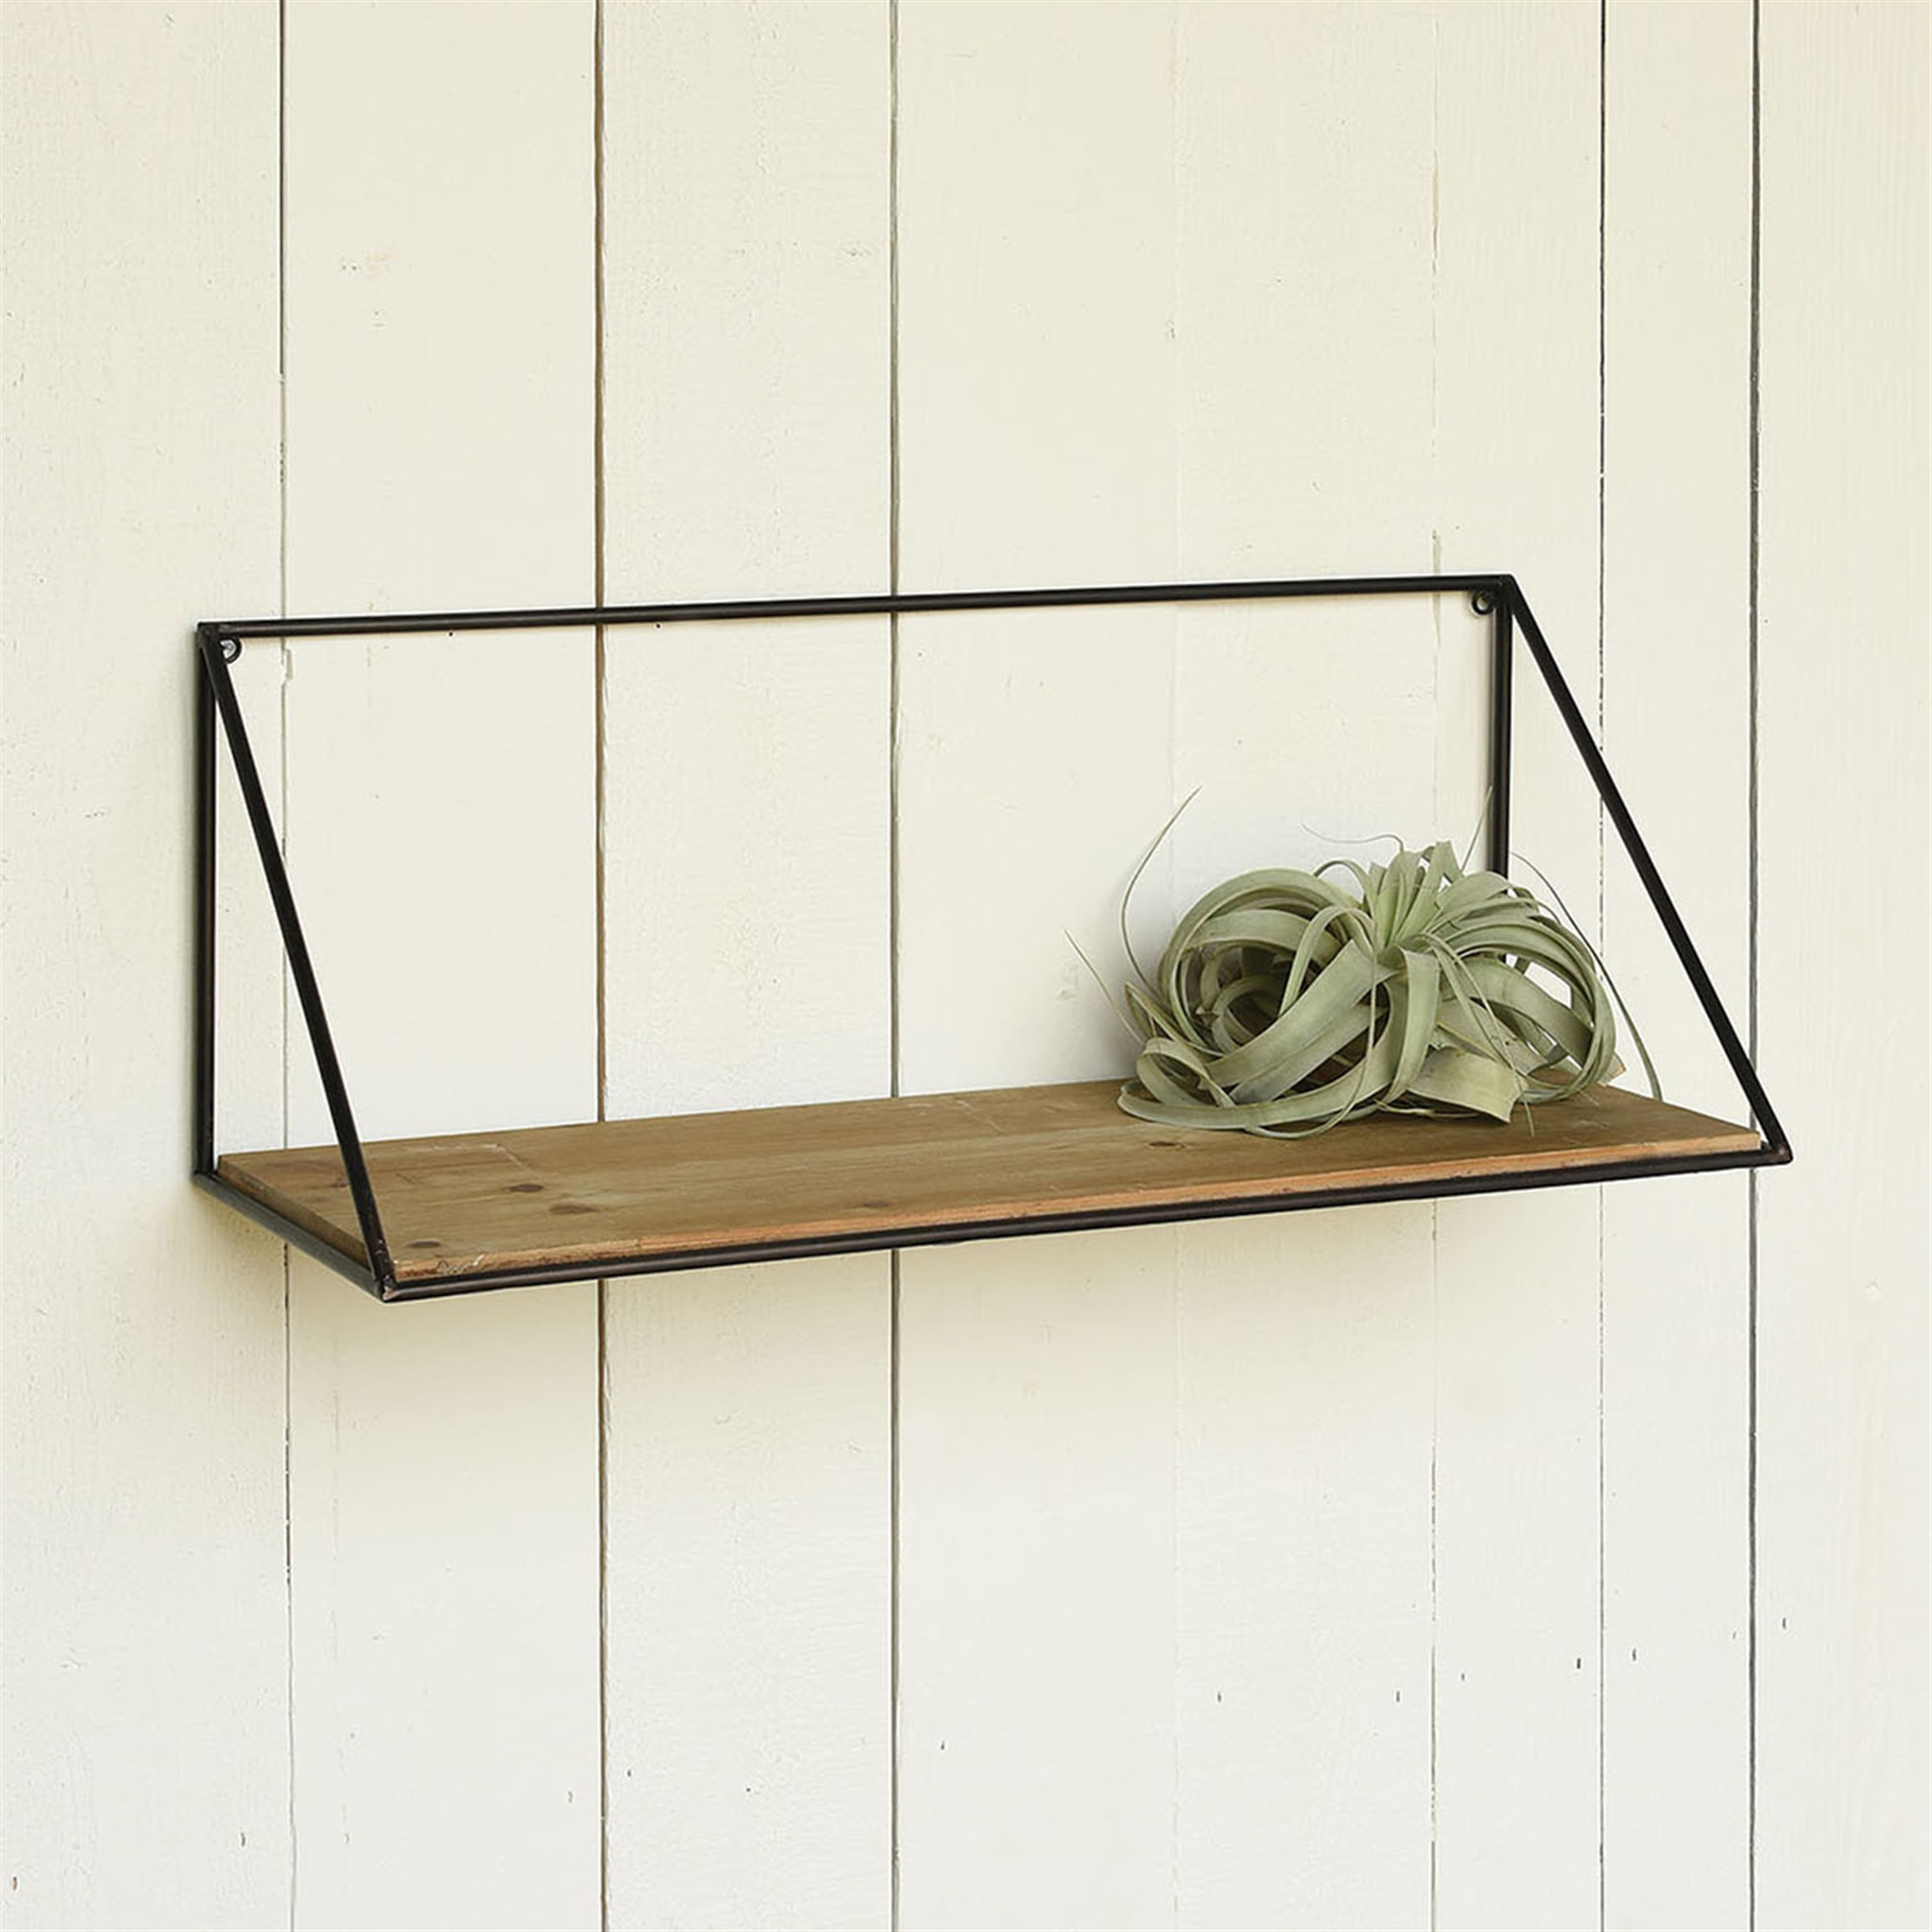 50020-0- Hull Wood & Iron Shelf - Large by HomArt